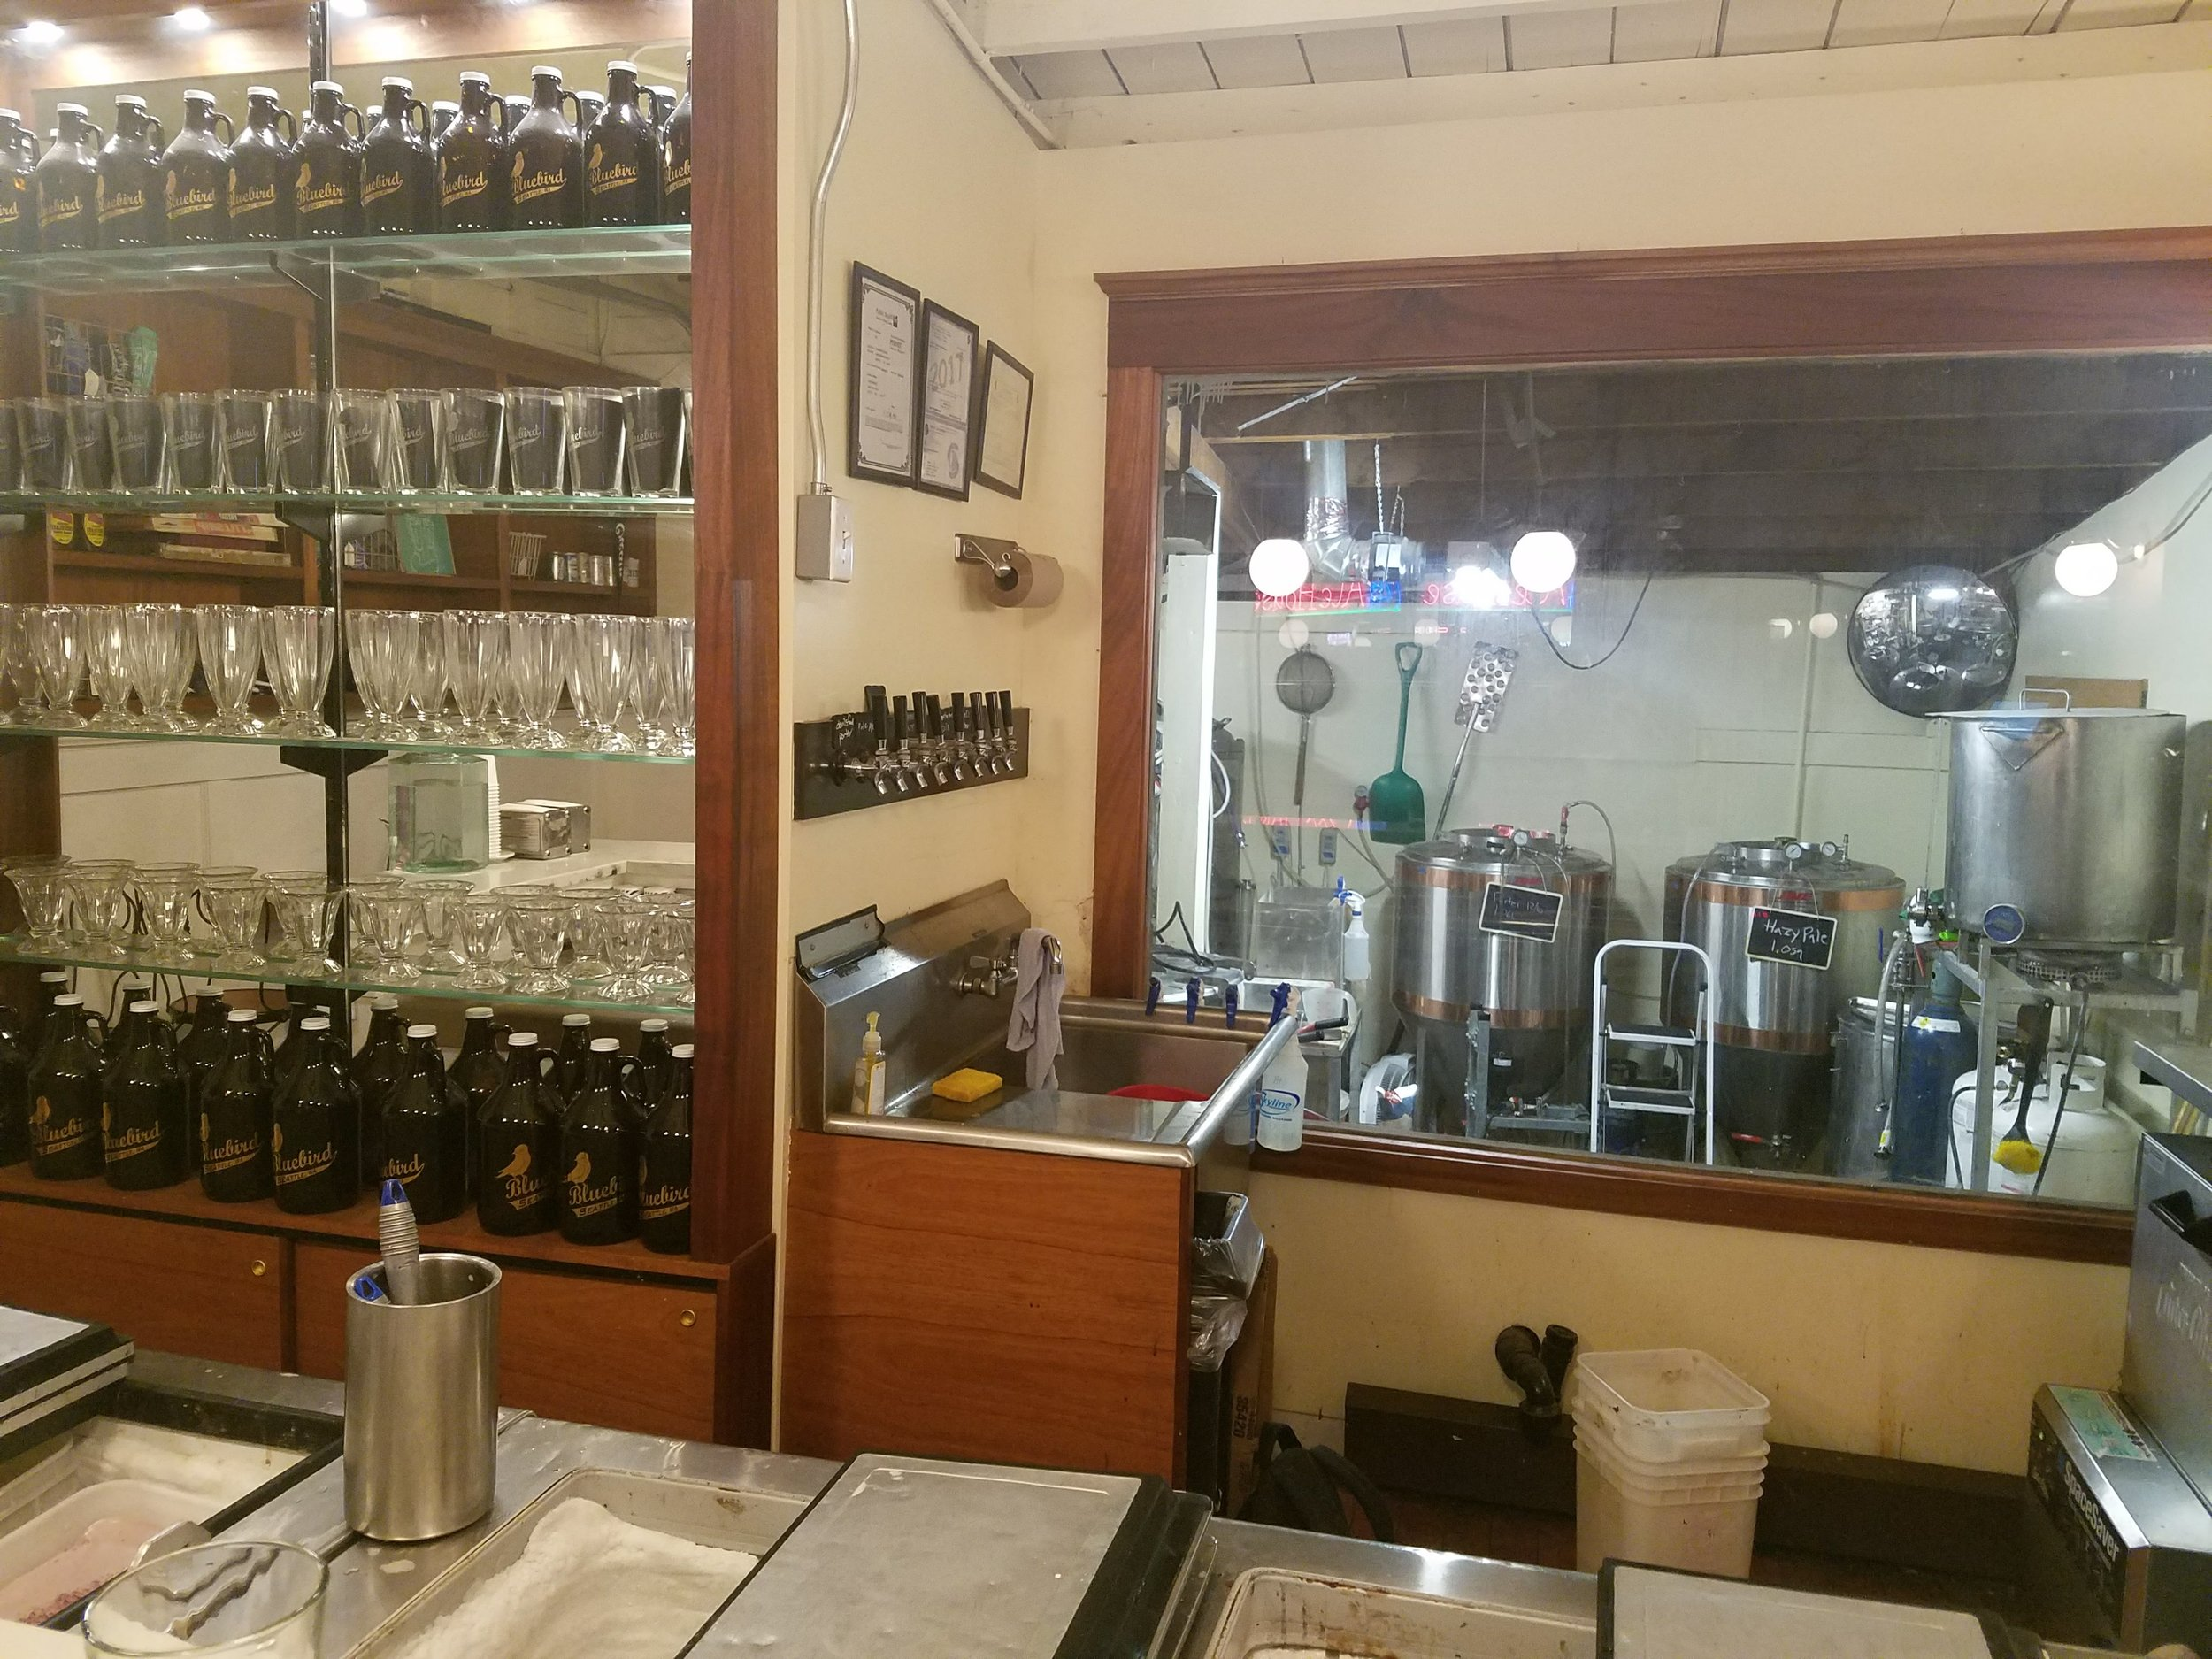 Bluebird Brewery and ice cream shop. Tiny little brewery in the back